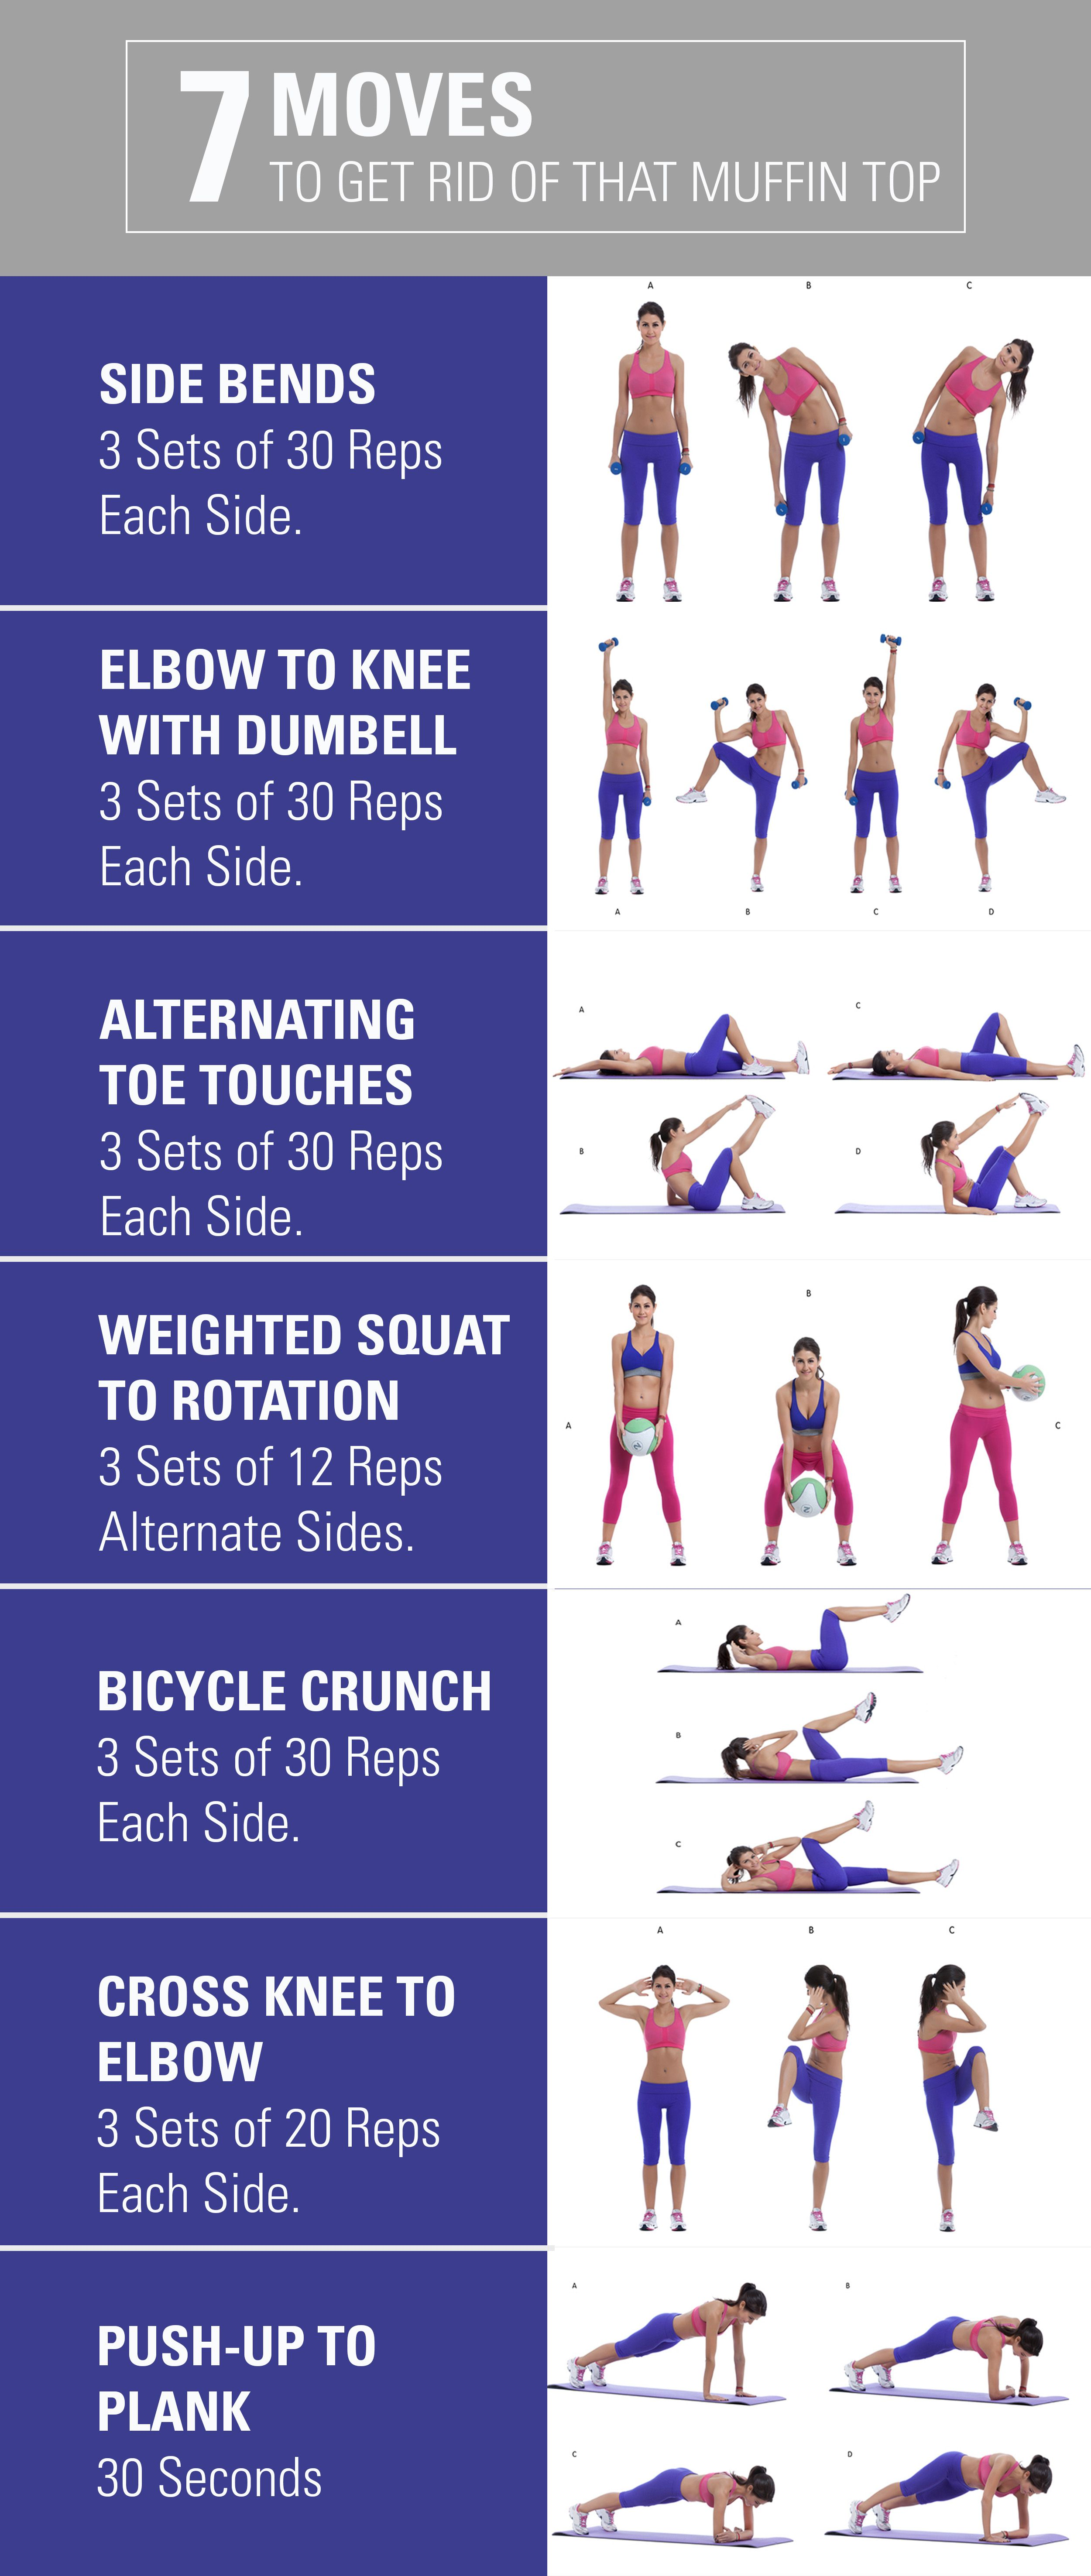 11 Moves To Get Rid Of A Muffin Top  Fitness motivation body